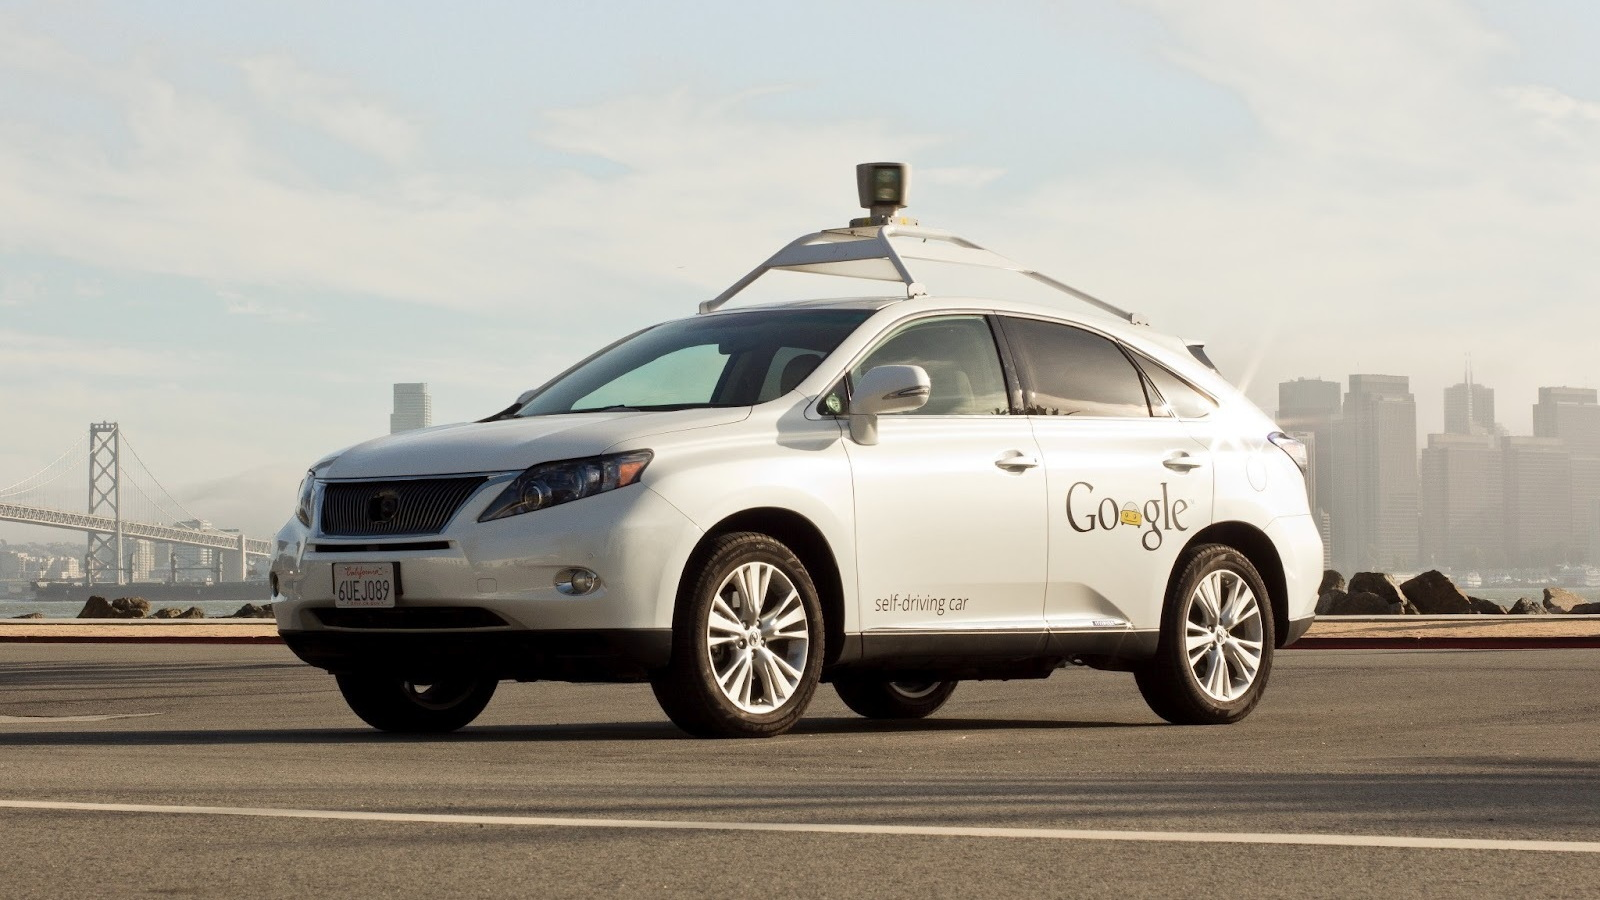 Google self-driving Lexus RX 450h hybrid sport-utility vehicle